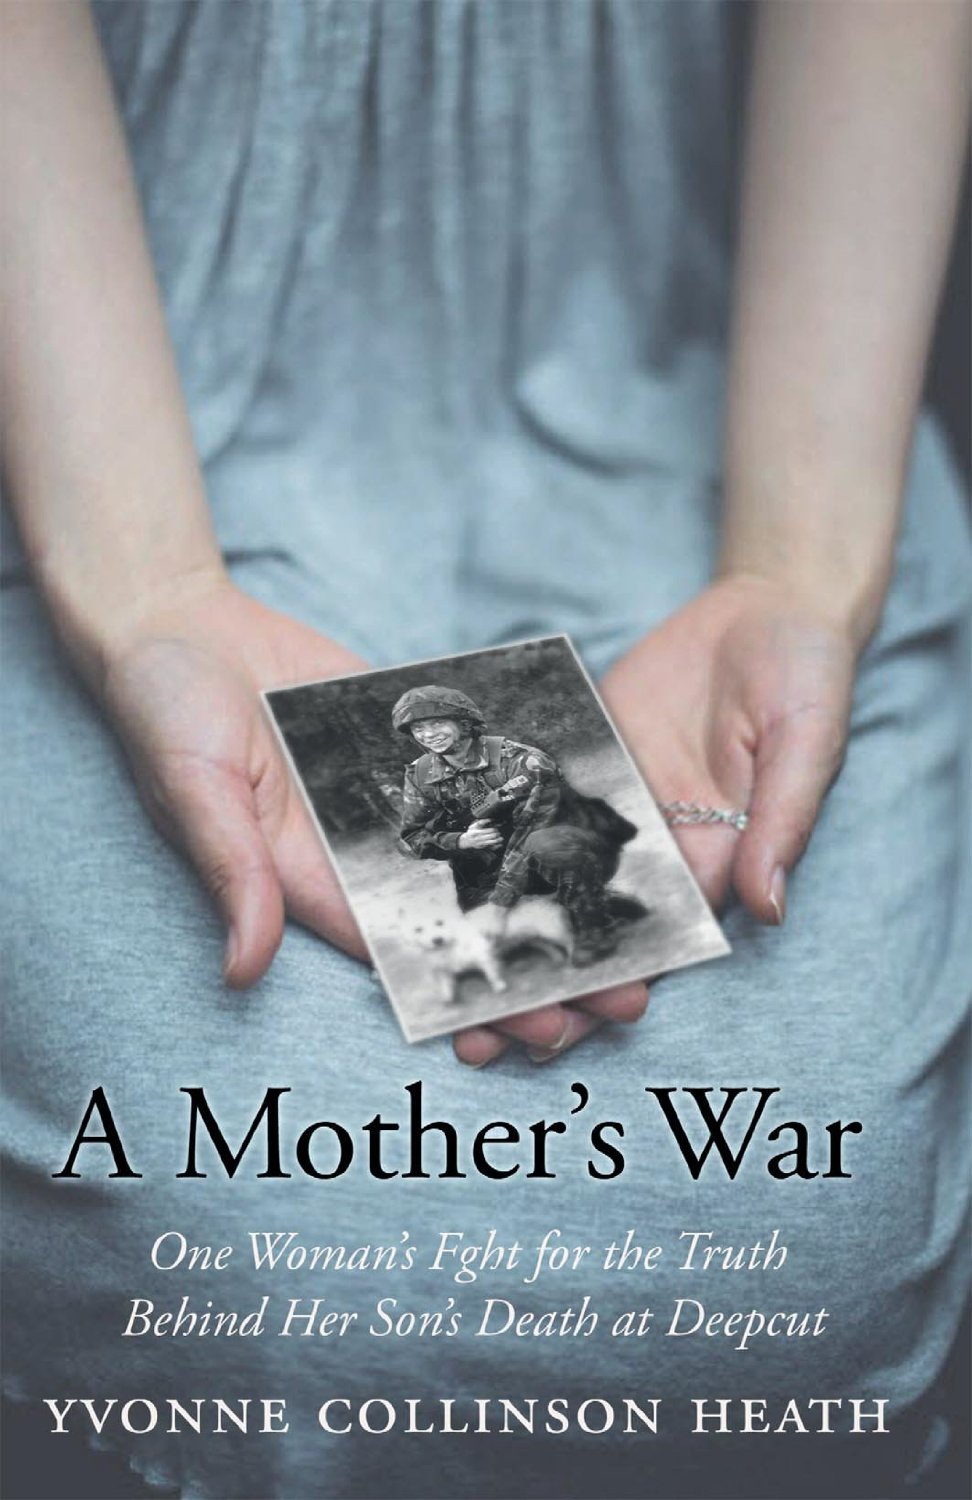 A Mother's War - Yvonne Collinson Heath.jpg